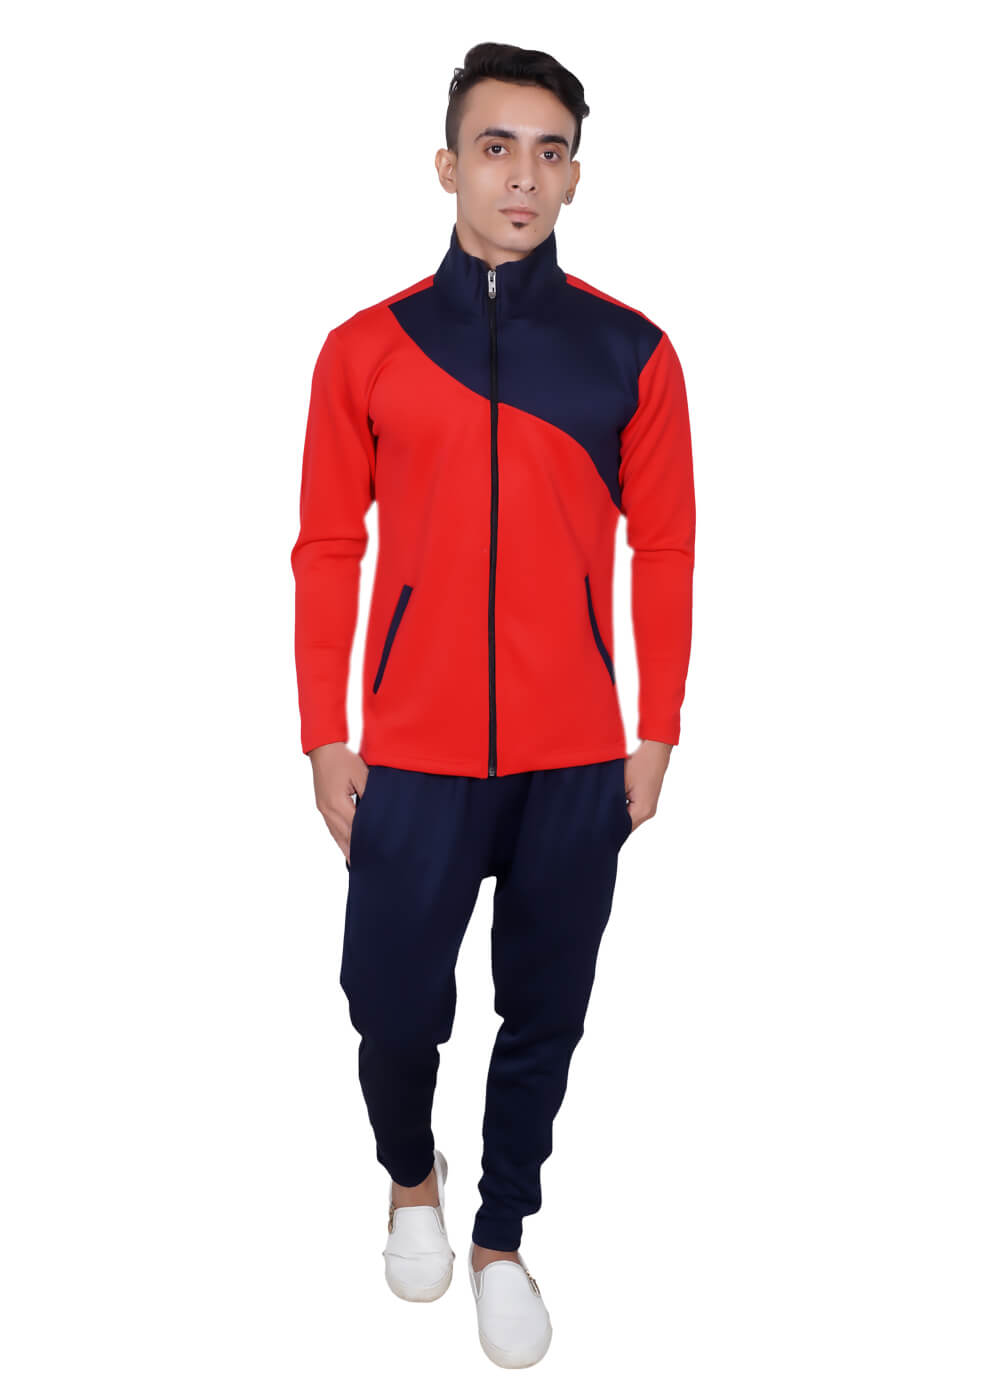 Cheap Tracksuits Manufacturers in Srinagar